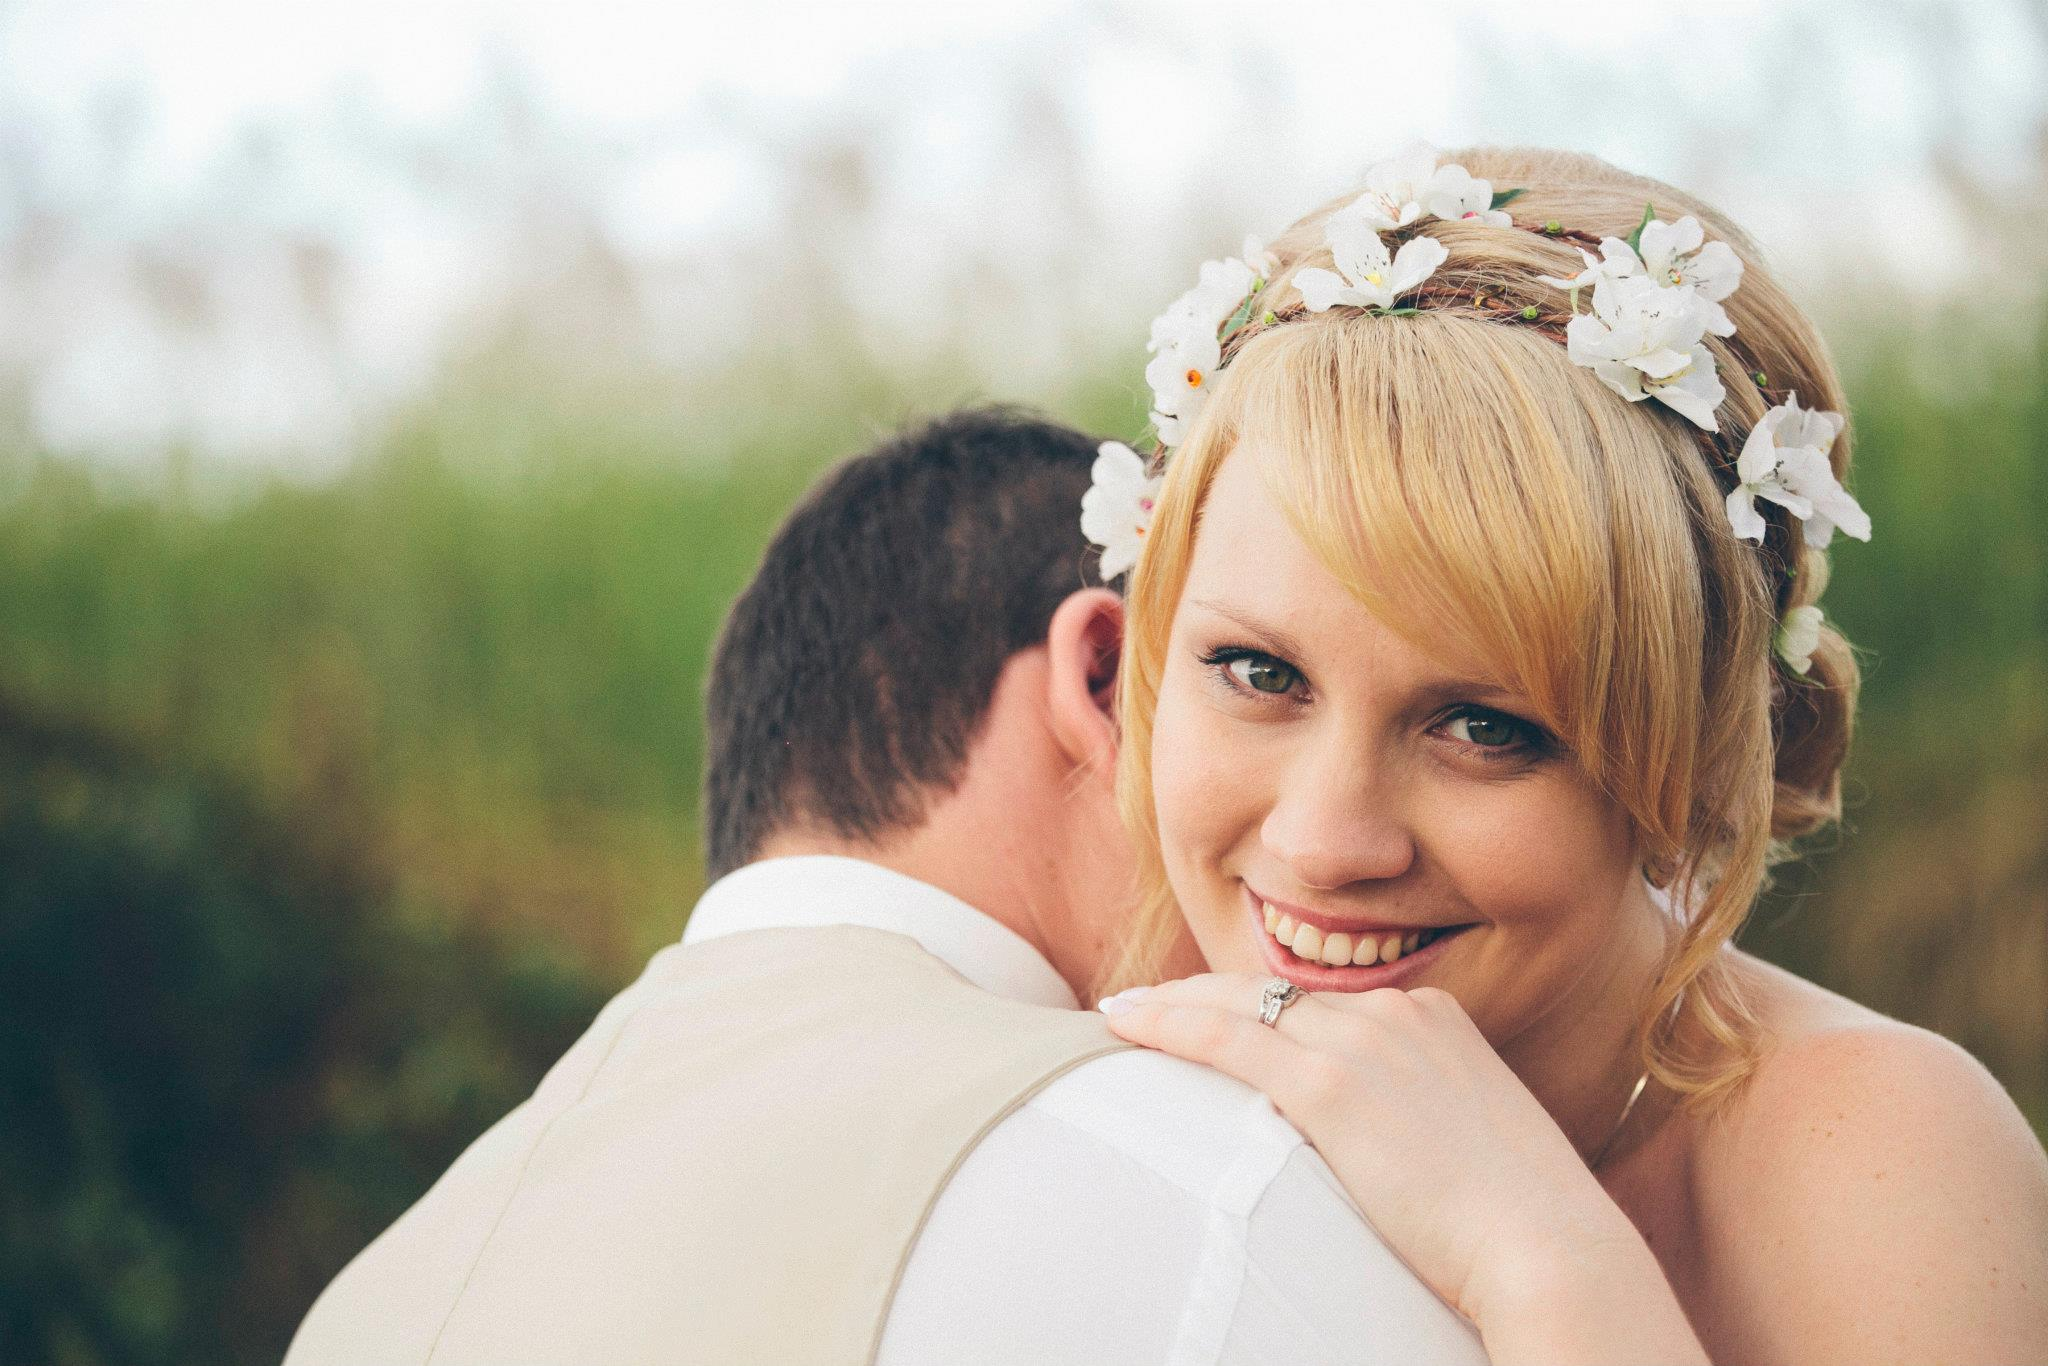 gorgeous-wedding-photo-of-the-bride-and-groom-cairns-bridal-makeup-and-wedding-hair